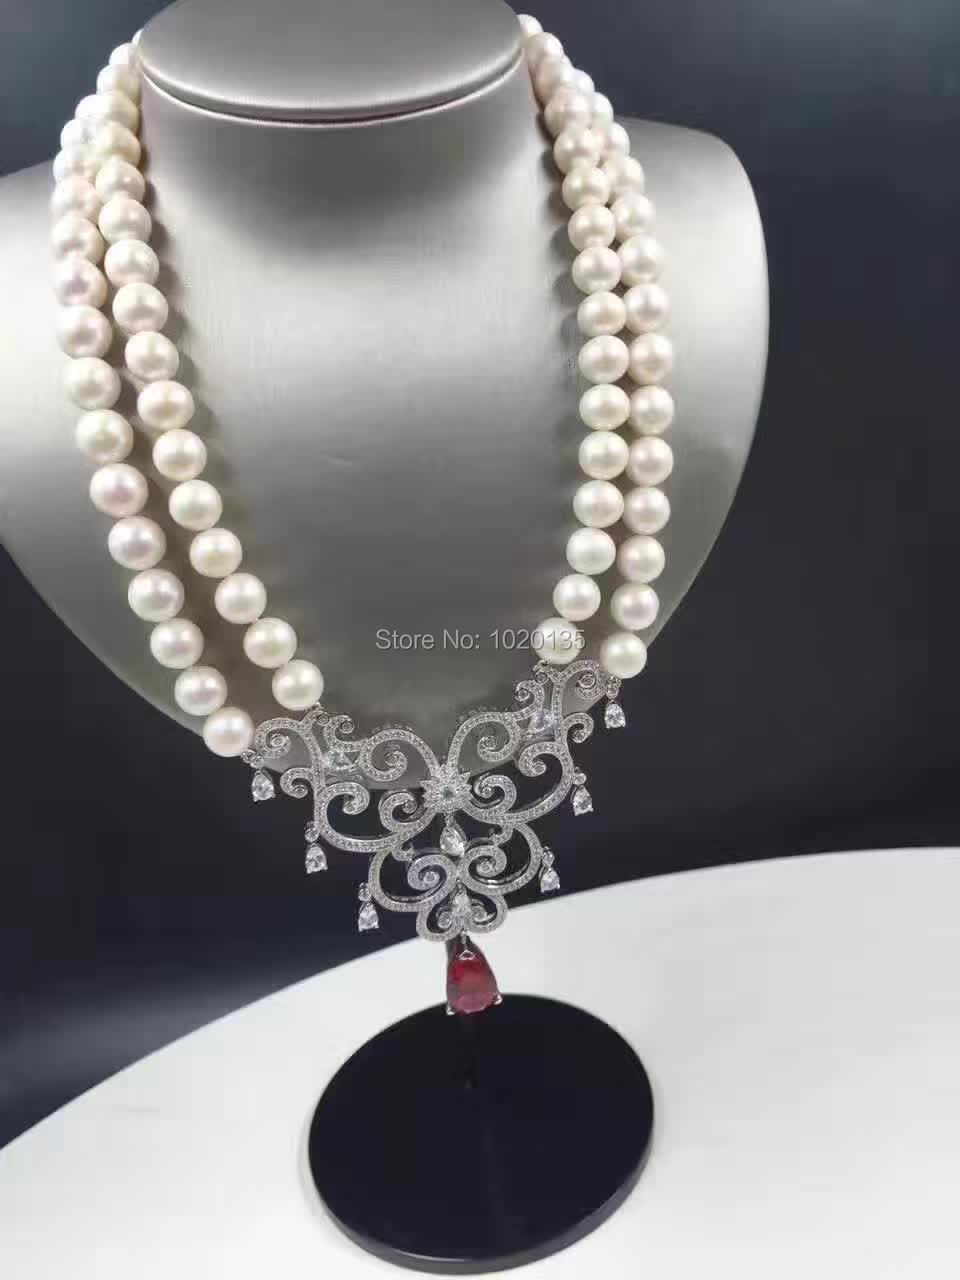 2rows 19-20inch freshwater pearl near round necklace 8-9mm  wholesale beads fashion gift red flower zircon2rows 19-20inch freshwater pearl near round necklace 8-9mm  wholesale beads fashion gift red flower zircon